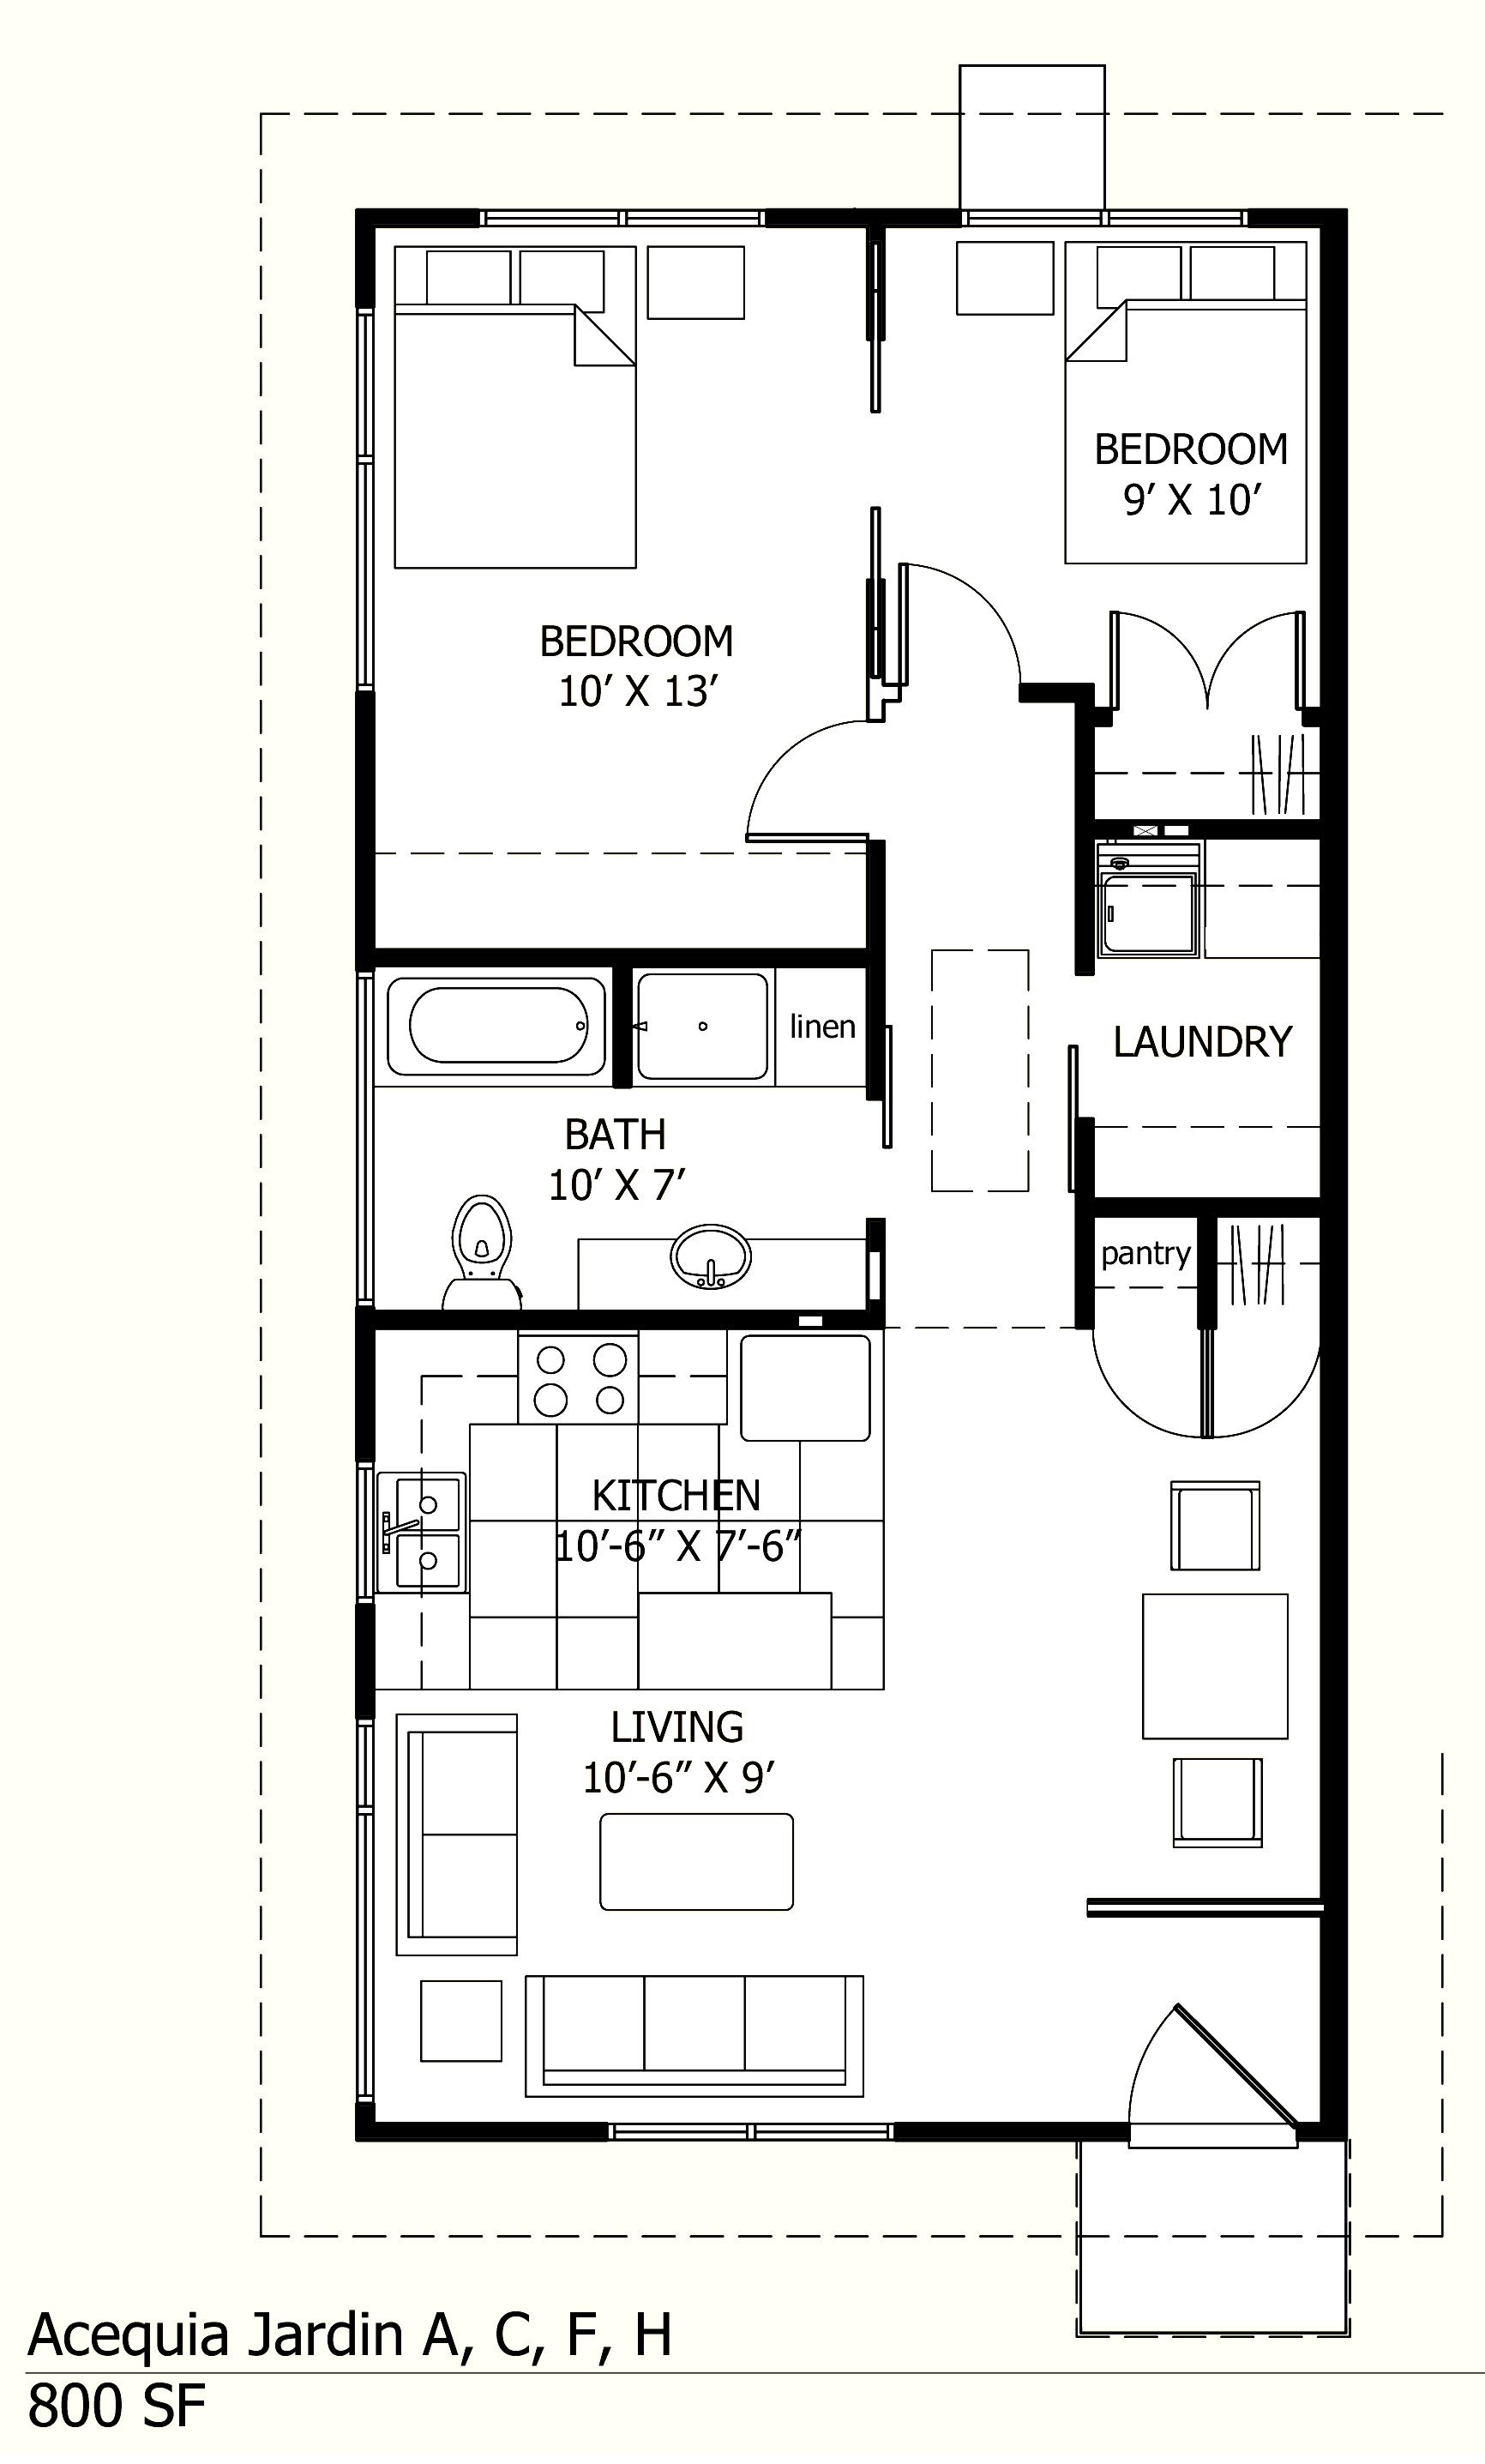 House Plans with Prices Elegant 800 Sq Ft